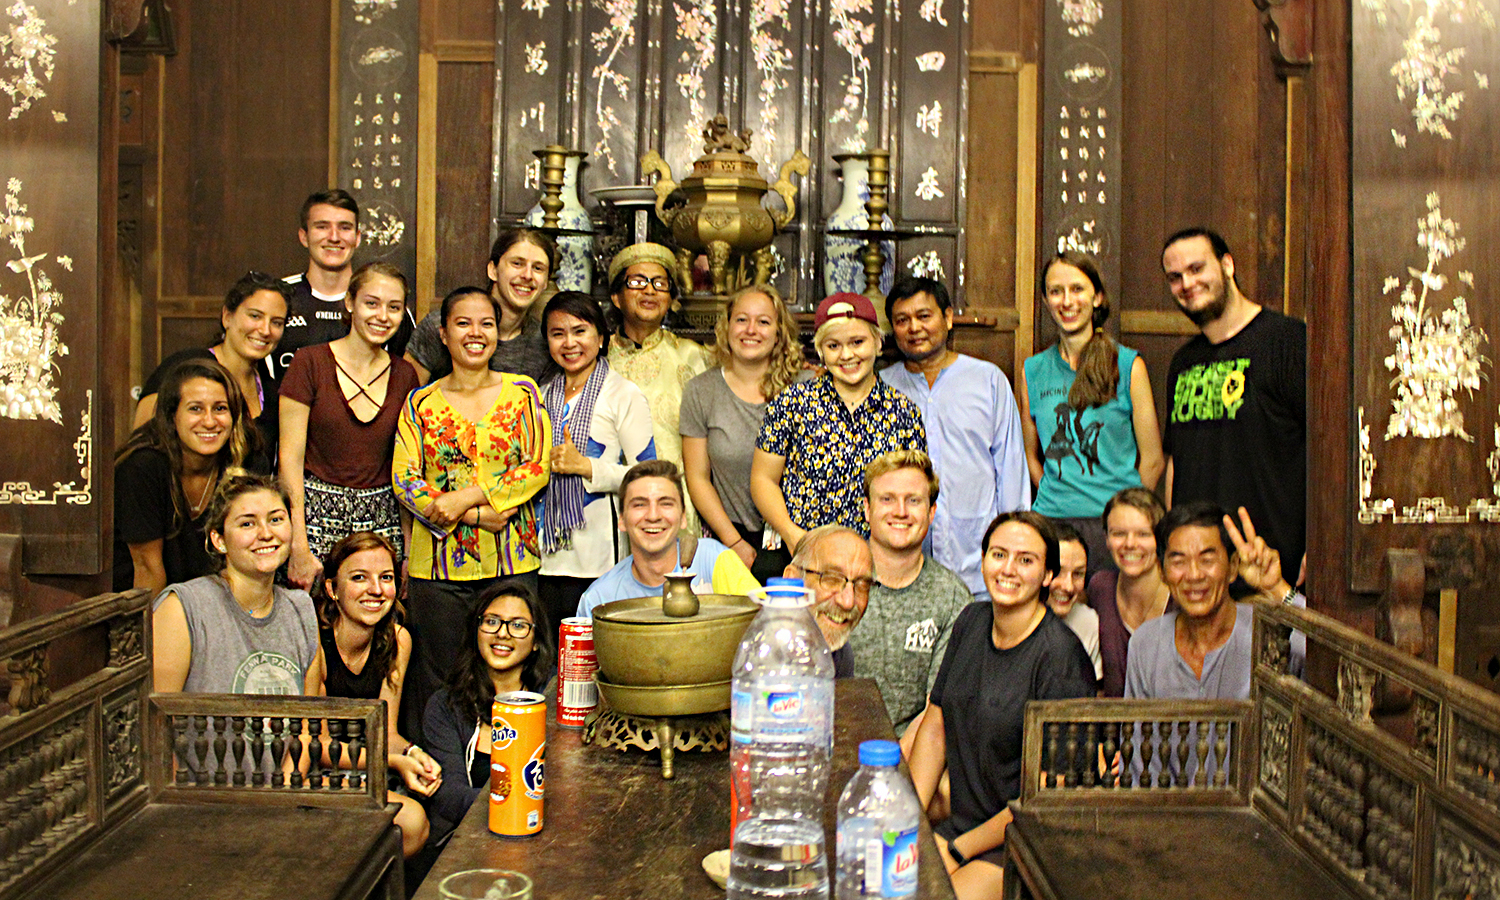 Students from HWS and Union College who are studying abroad in Vietnam gather for a photo with their homestay sponsors during an excursion to the Mekong Delta where they enjoyed a traditional Vietnamese performance.